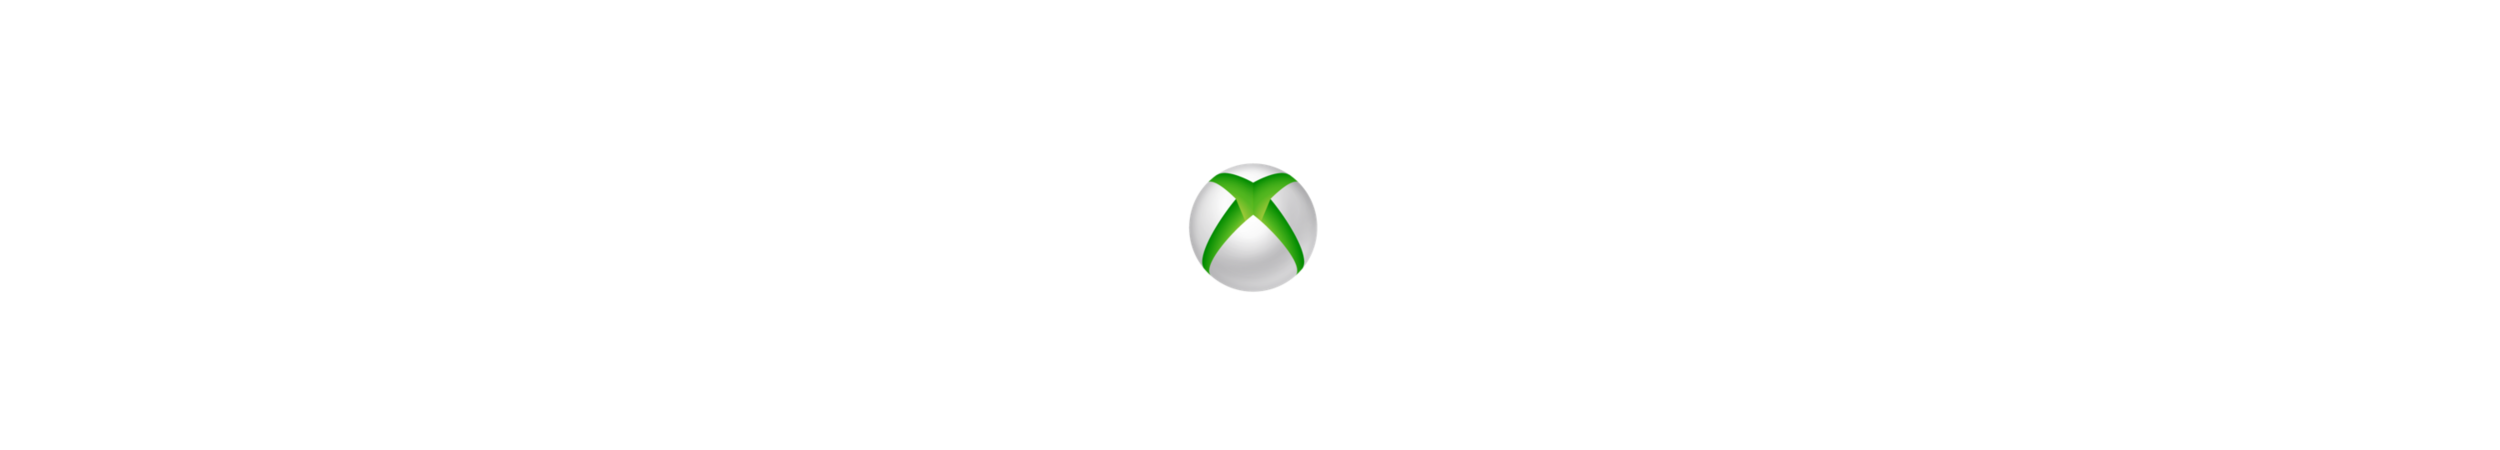 XBOX Header.png